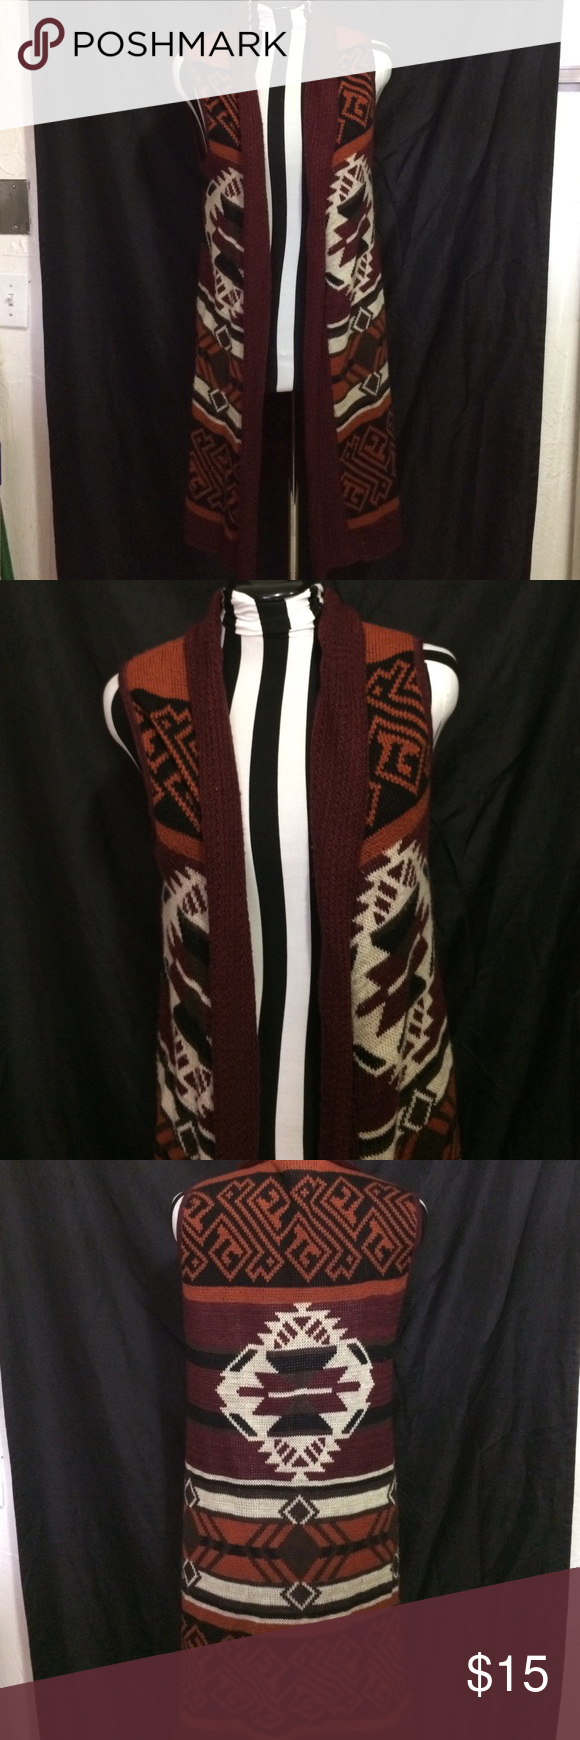 Buckle Daytrip sleeveless duster cardigan This duster cardigan has ...